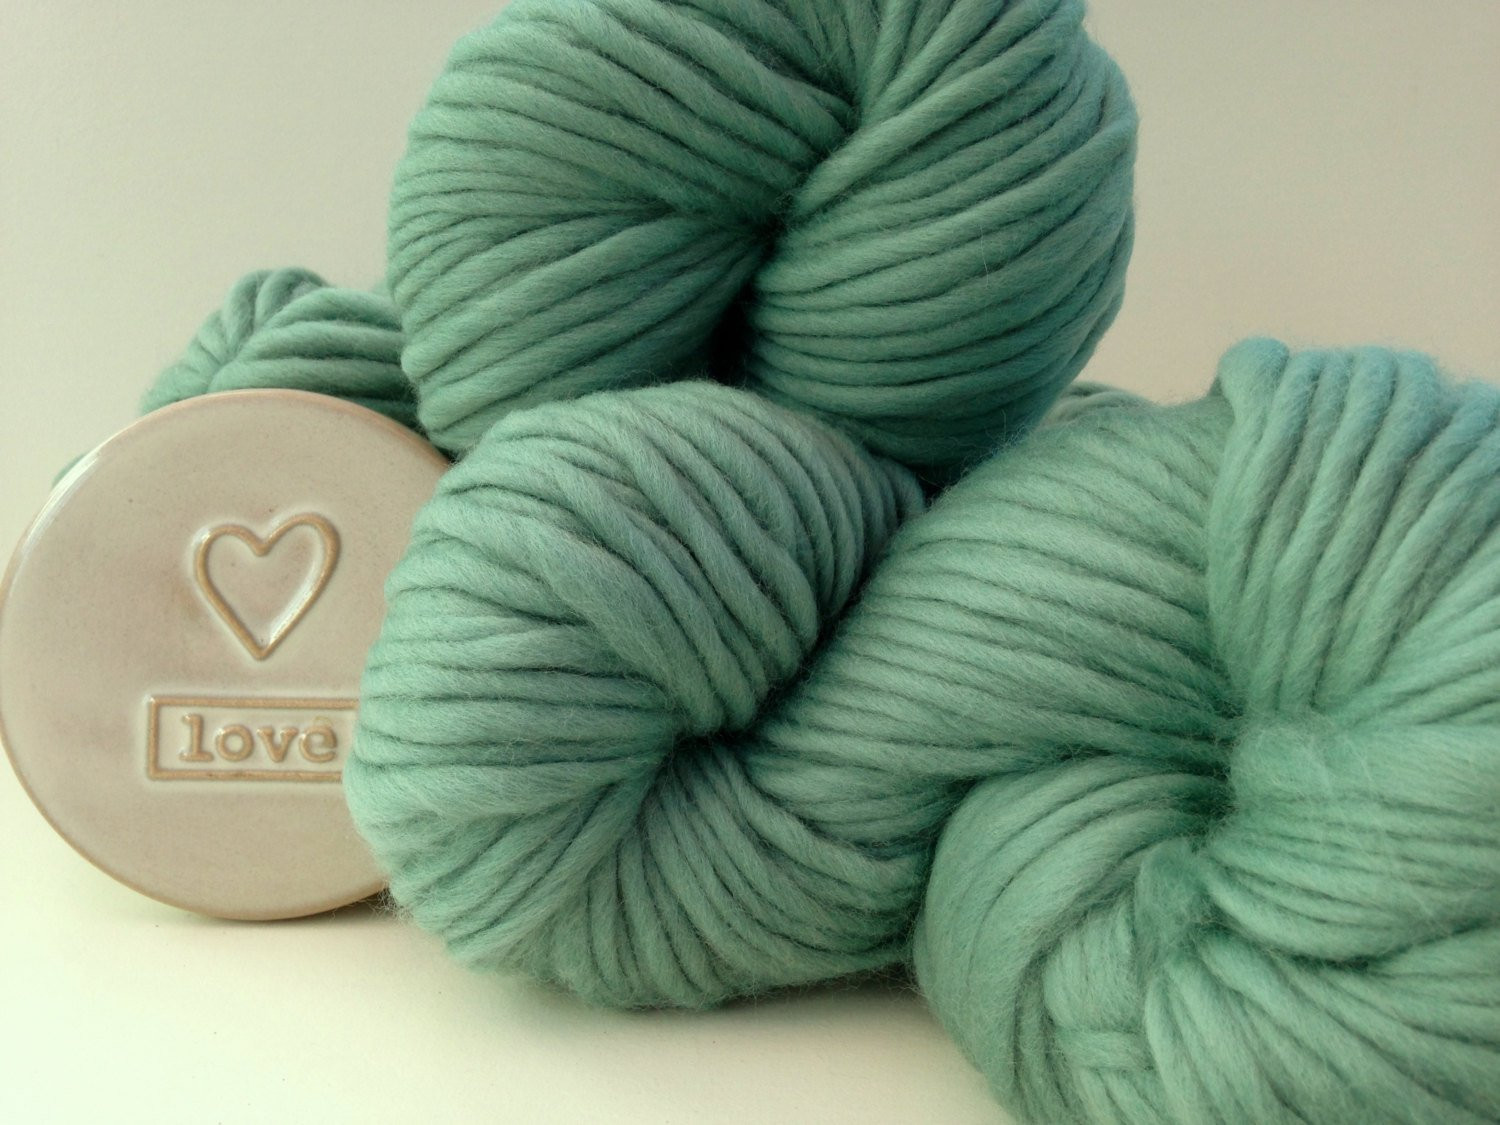 Super Chunky Yarn Elegant Chunky Wool Yarn Teal Green Super Bulky by Woolcouture Pany Of Great 49 Pictures Super Chunky Yarn